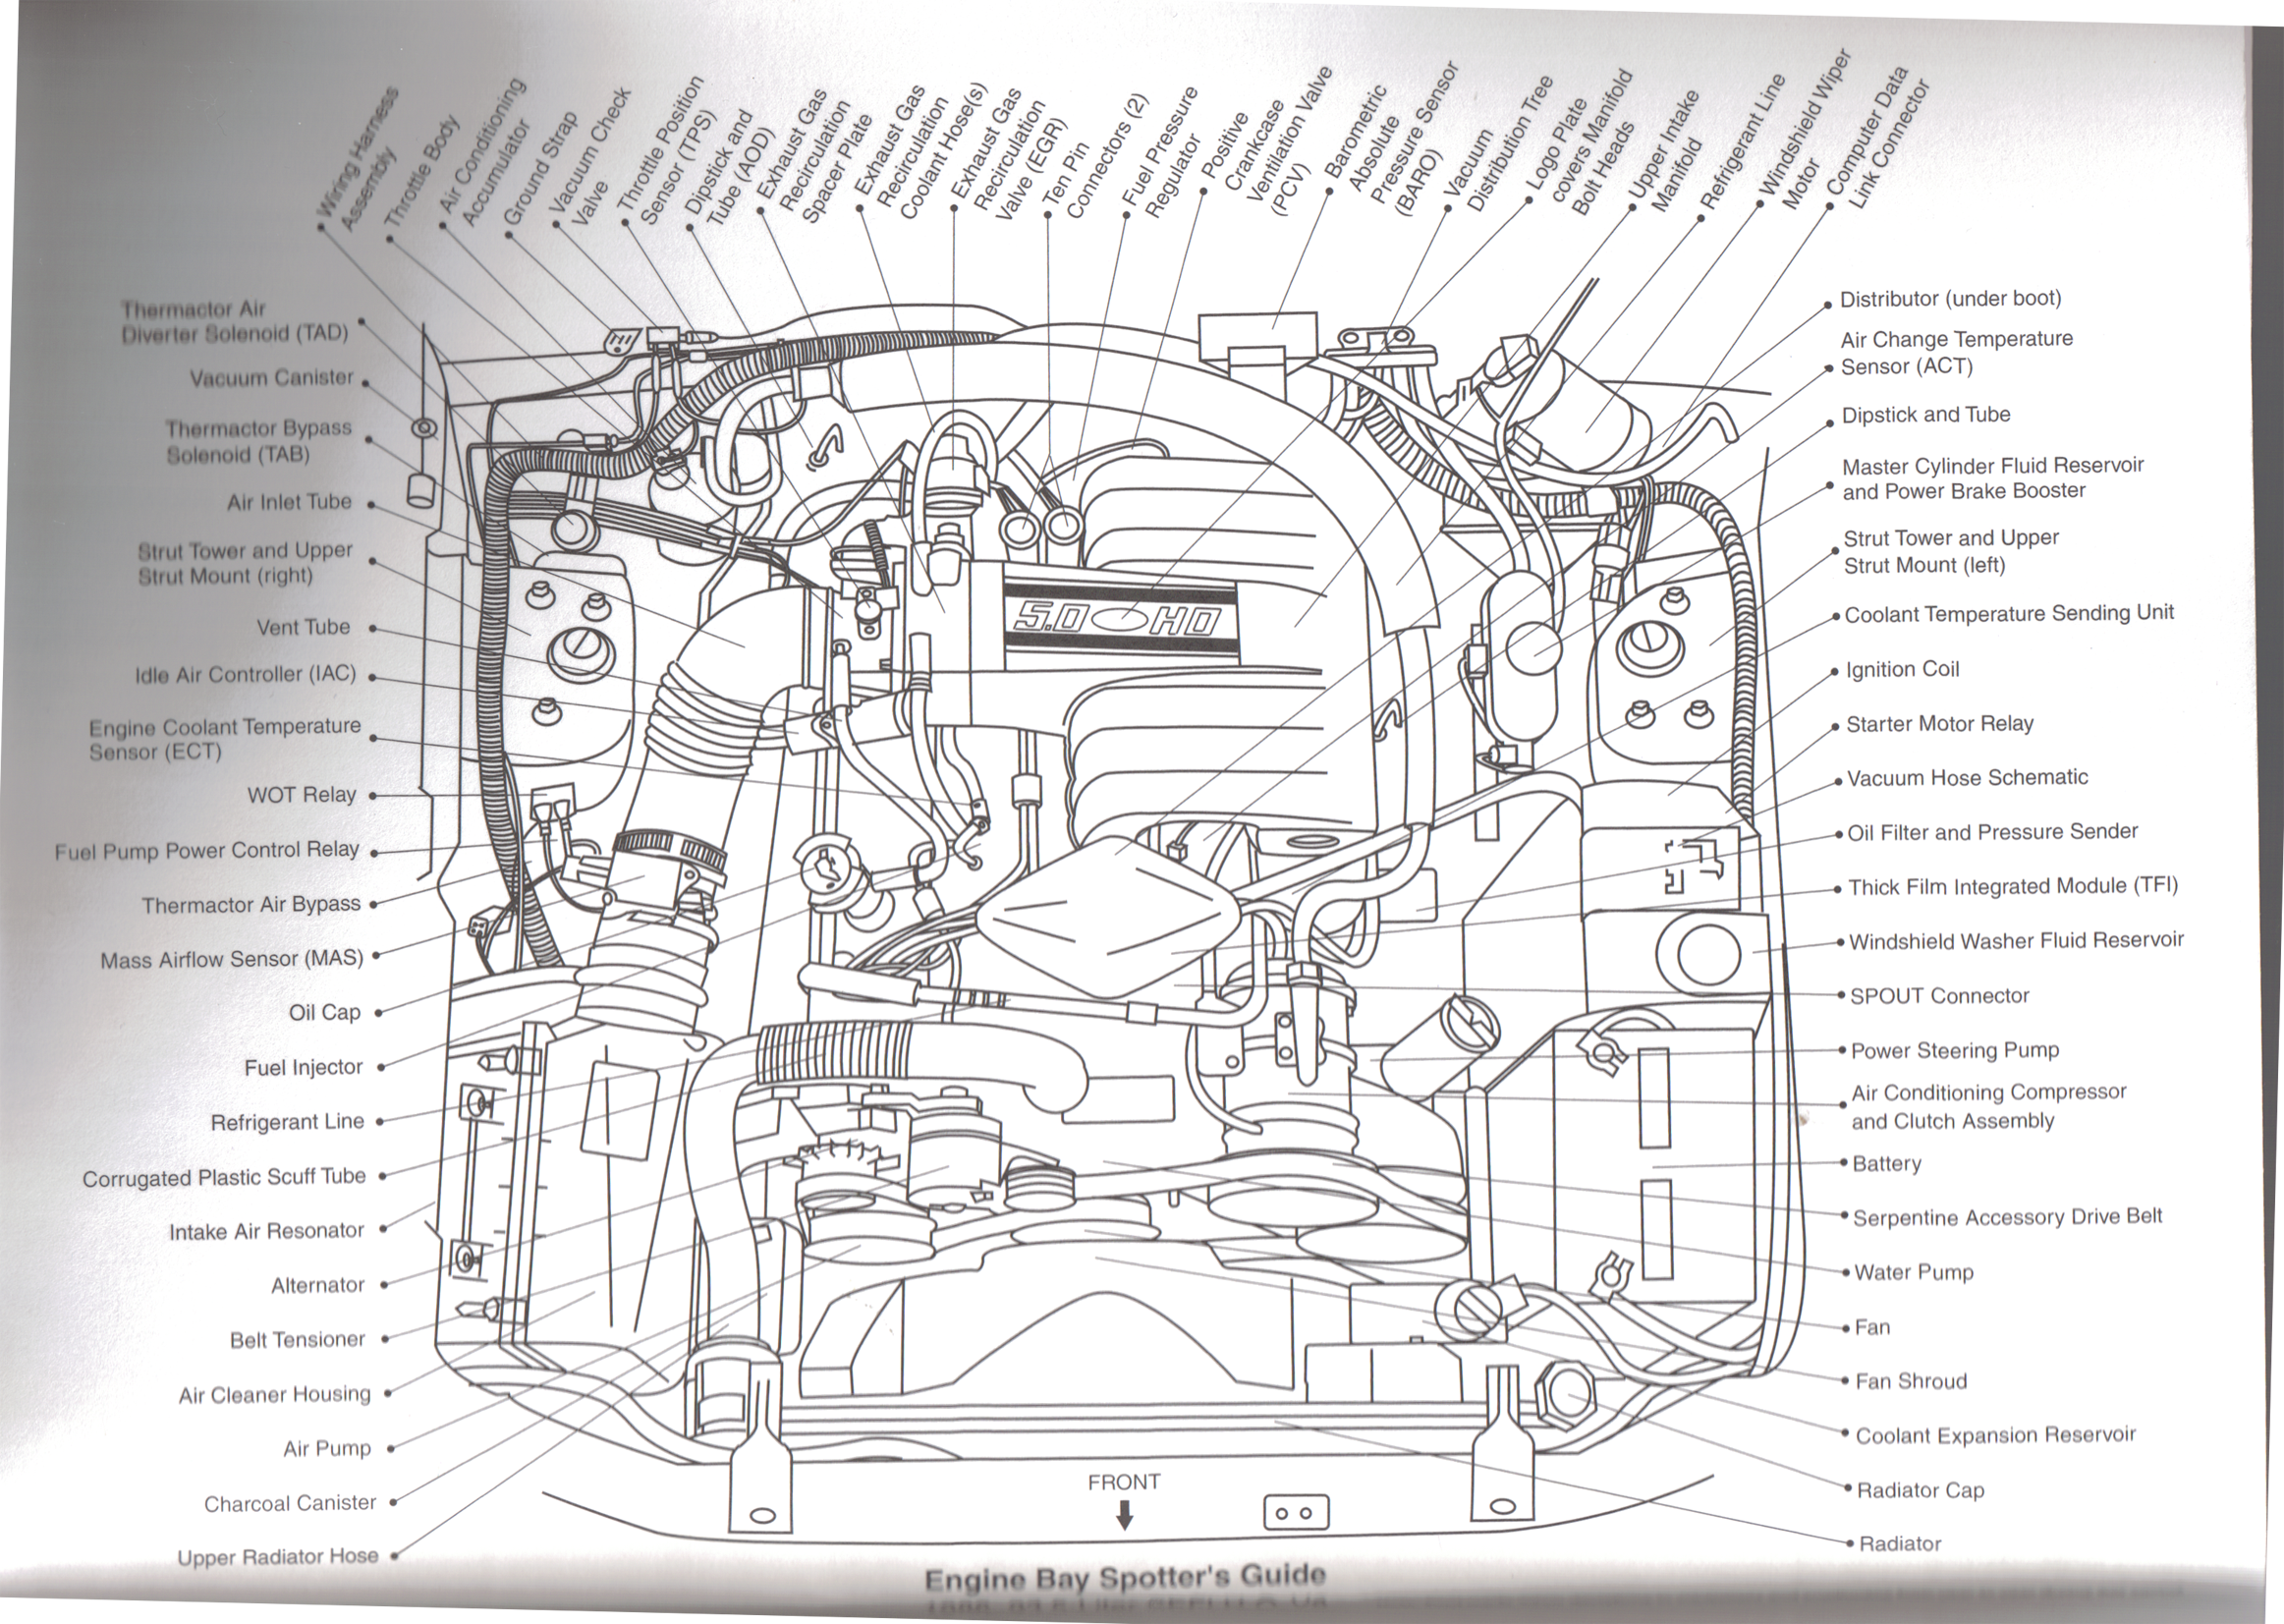 1987 1993 foxbody 5.0 sefi v8 engine part diagram everything you need to know about 1979 1993 foxbody mustangs ignition wiring diagram 93 mustang at mifinder.co